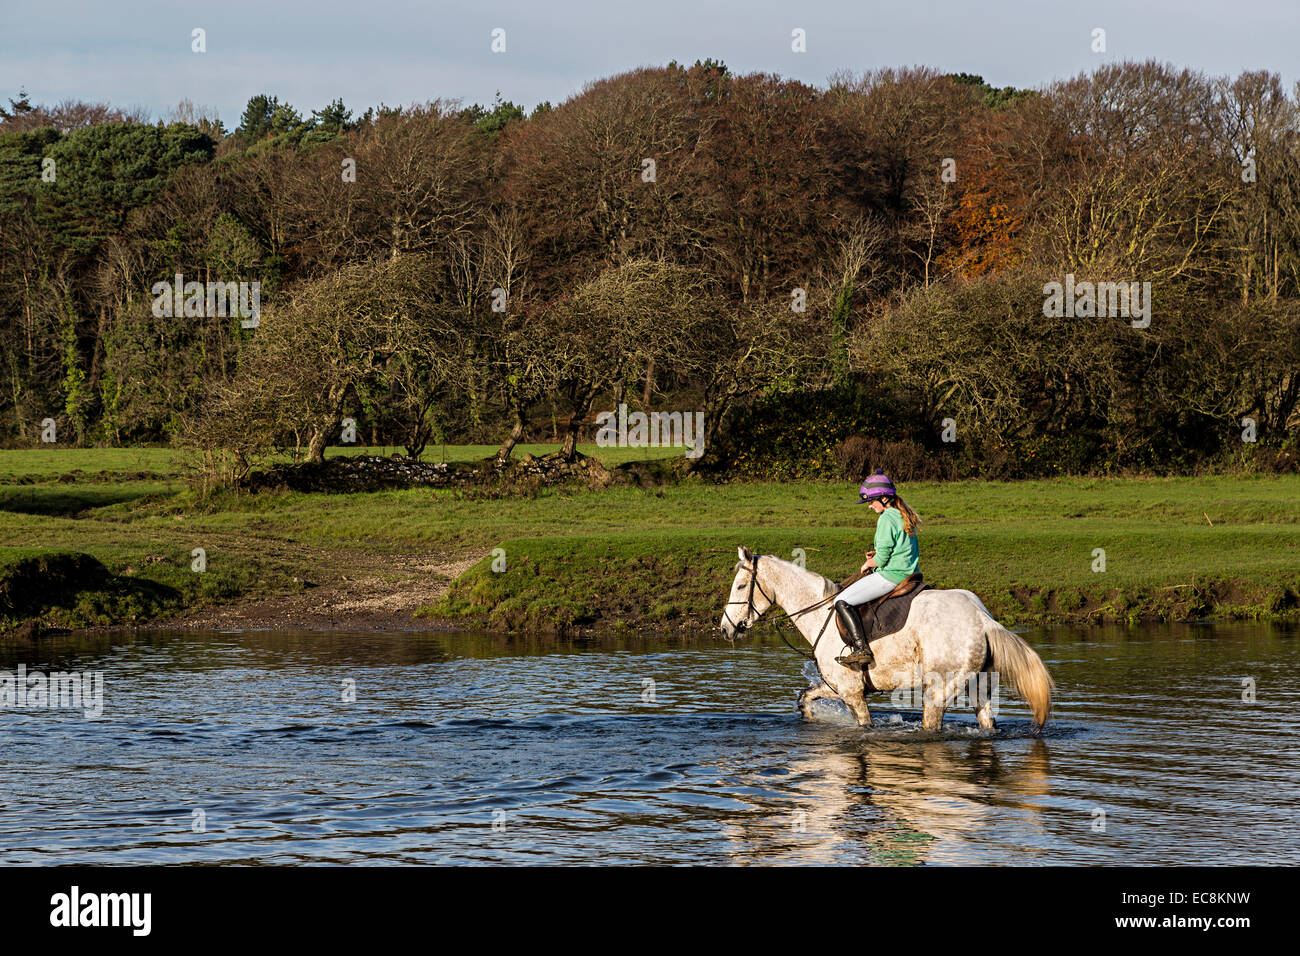 Girl on horse fording river, Ogmore, Wales, UK - Stock Image